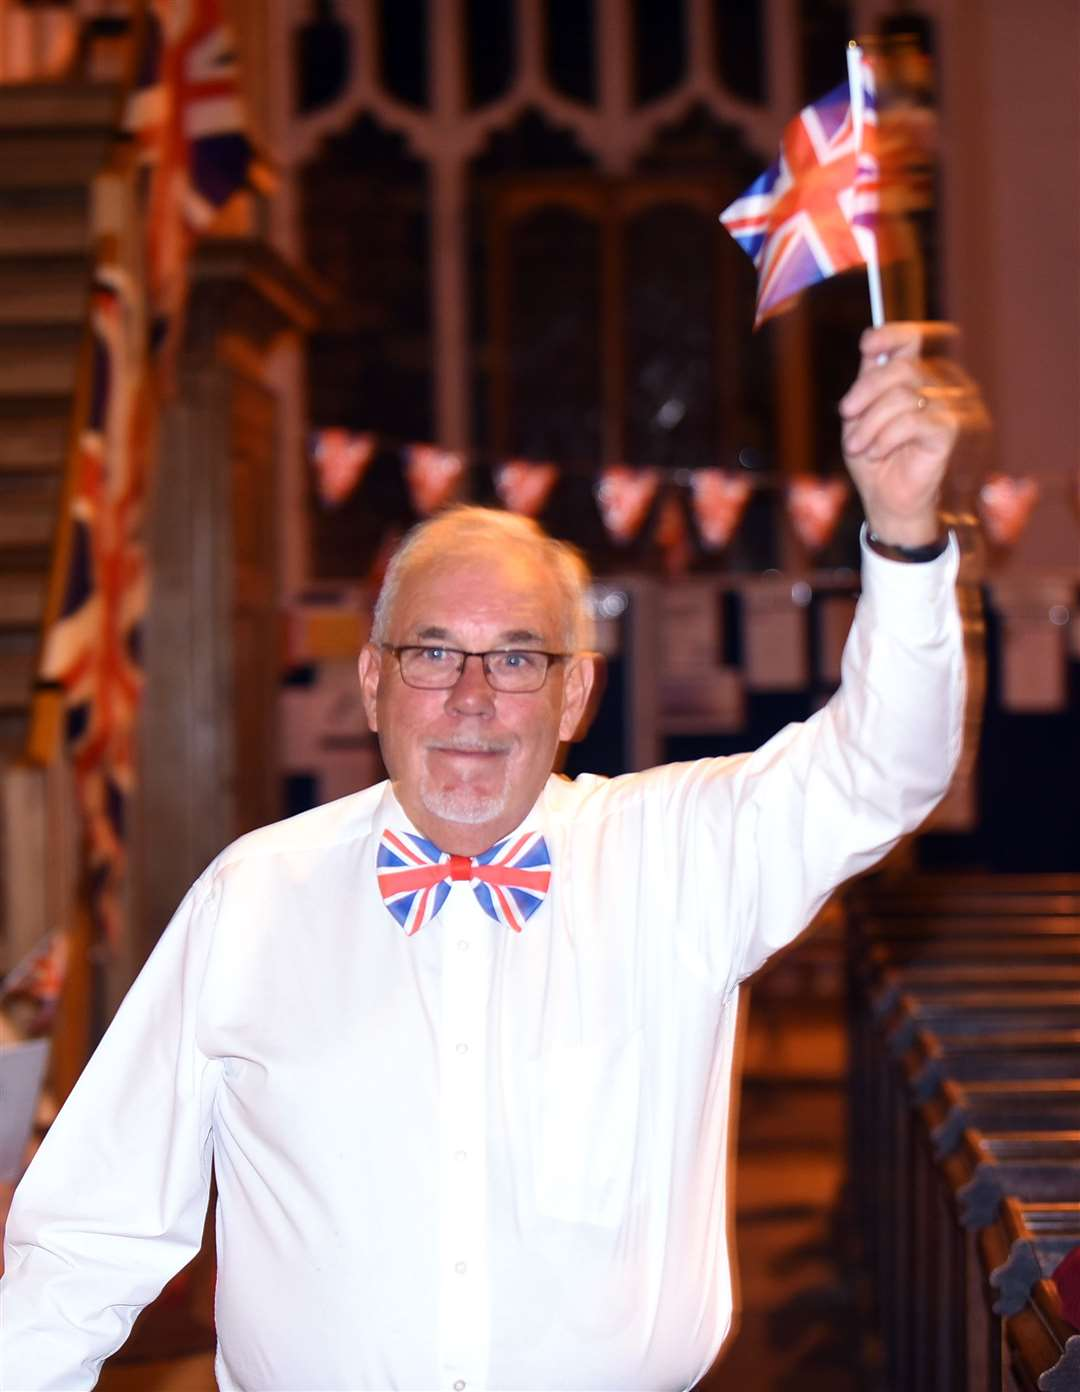 Last night of the proms at St Peter's church Wisbech. (16293620)